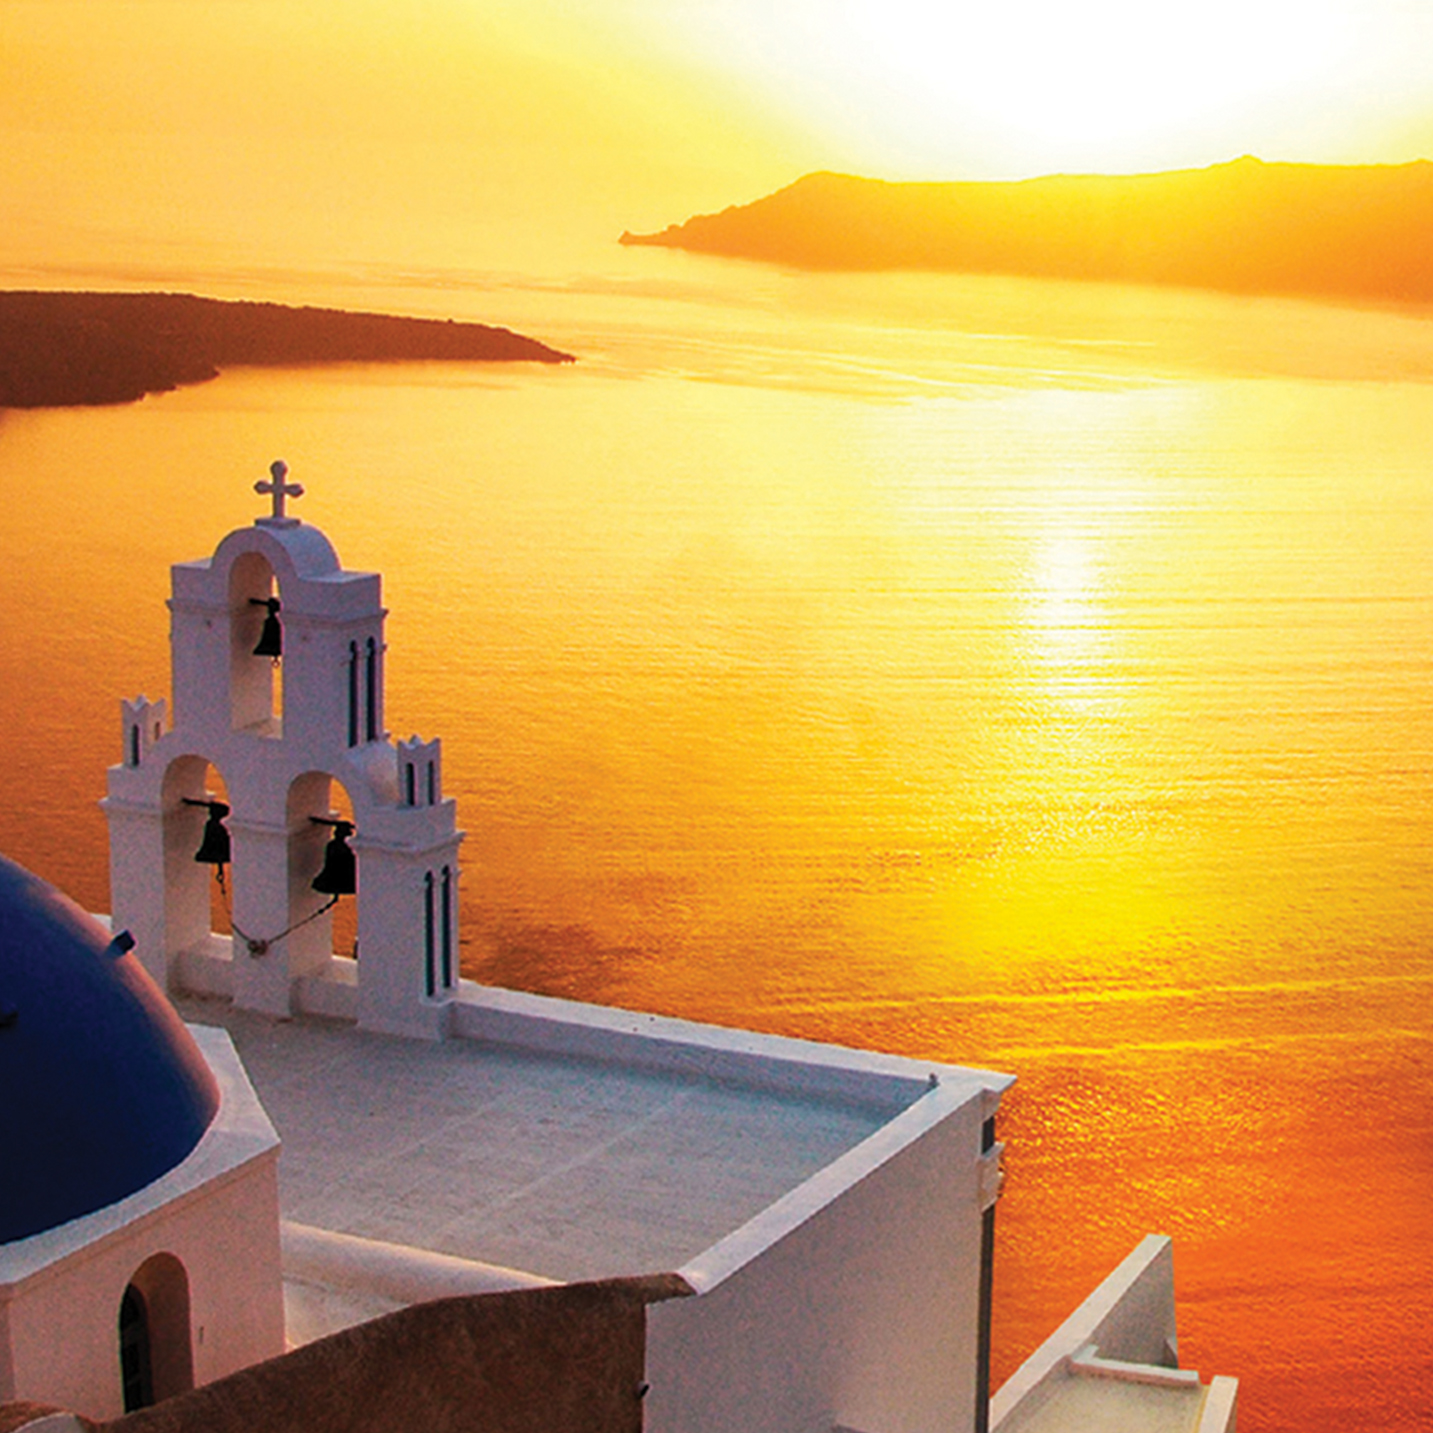 HOME PAGE - TEMPLATE-Recovered_0017_58.Port - Aegean.jpg